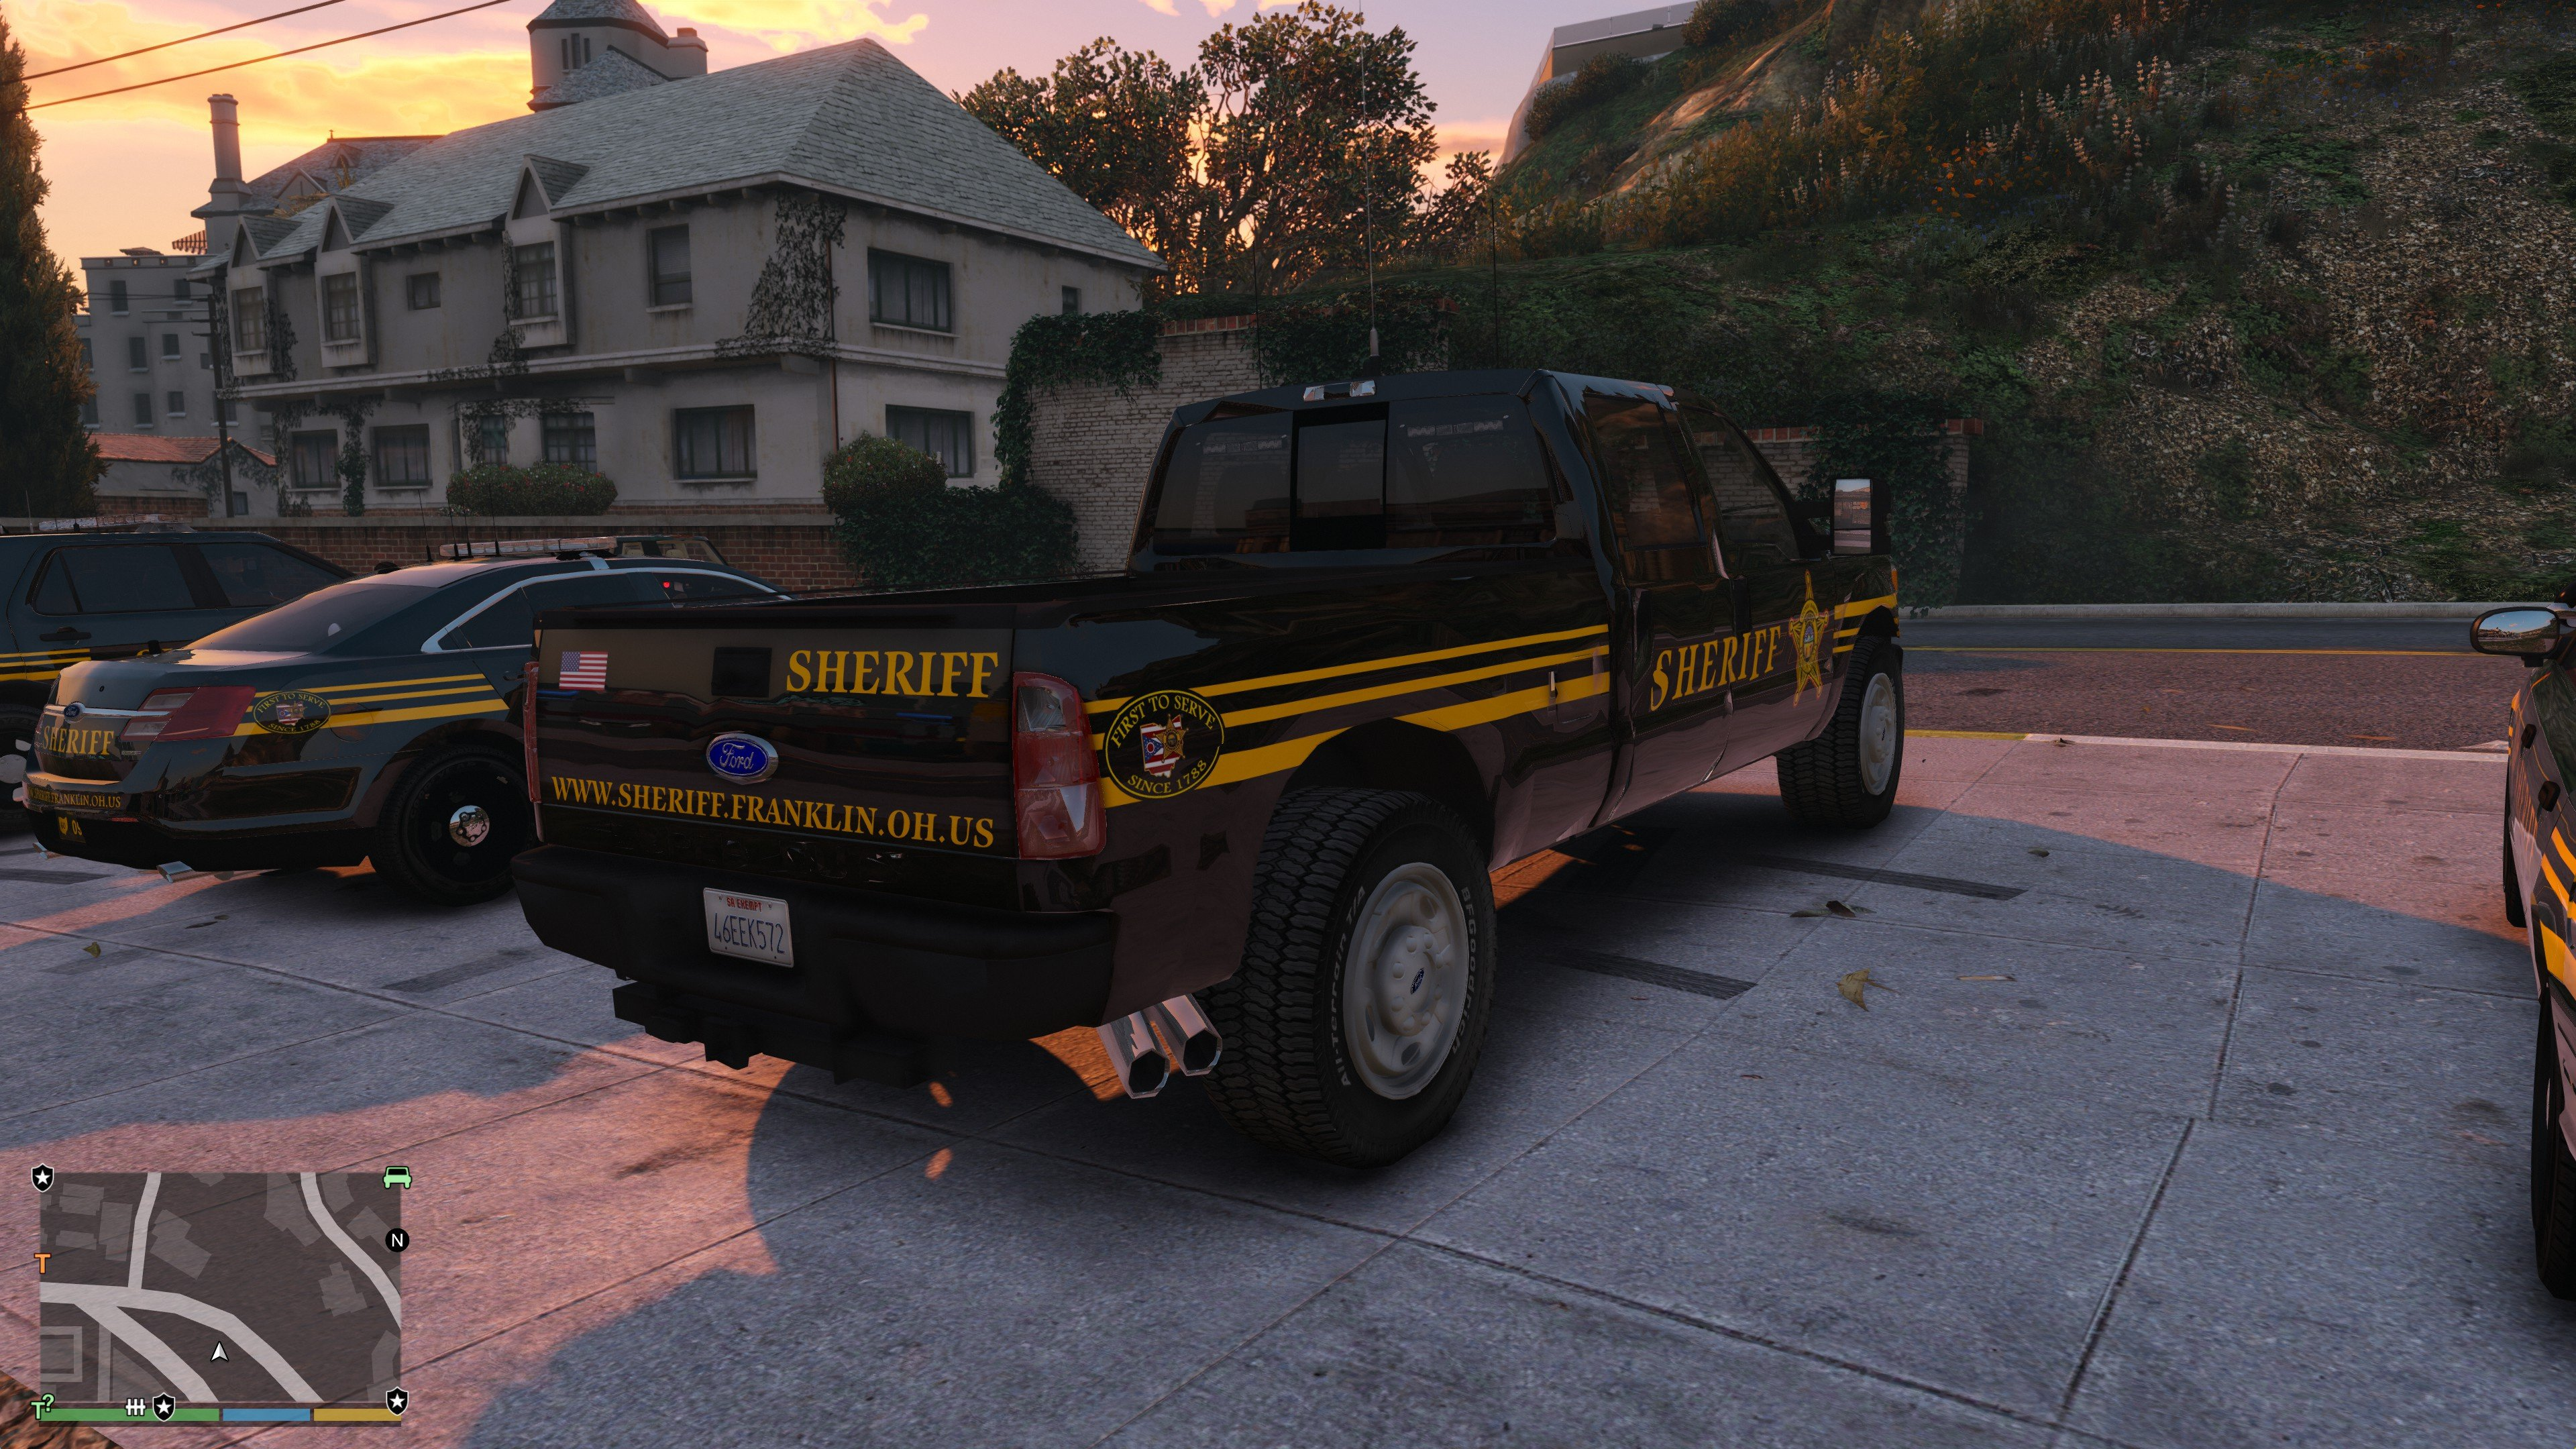 Franklin County Sheriff's Office, Ohio - Texture Pack [4K